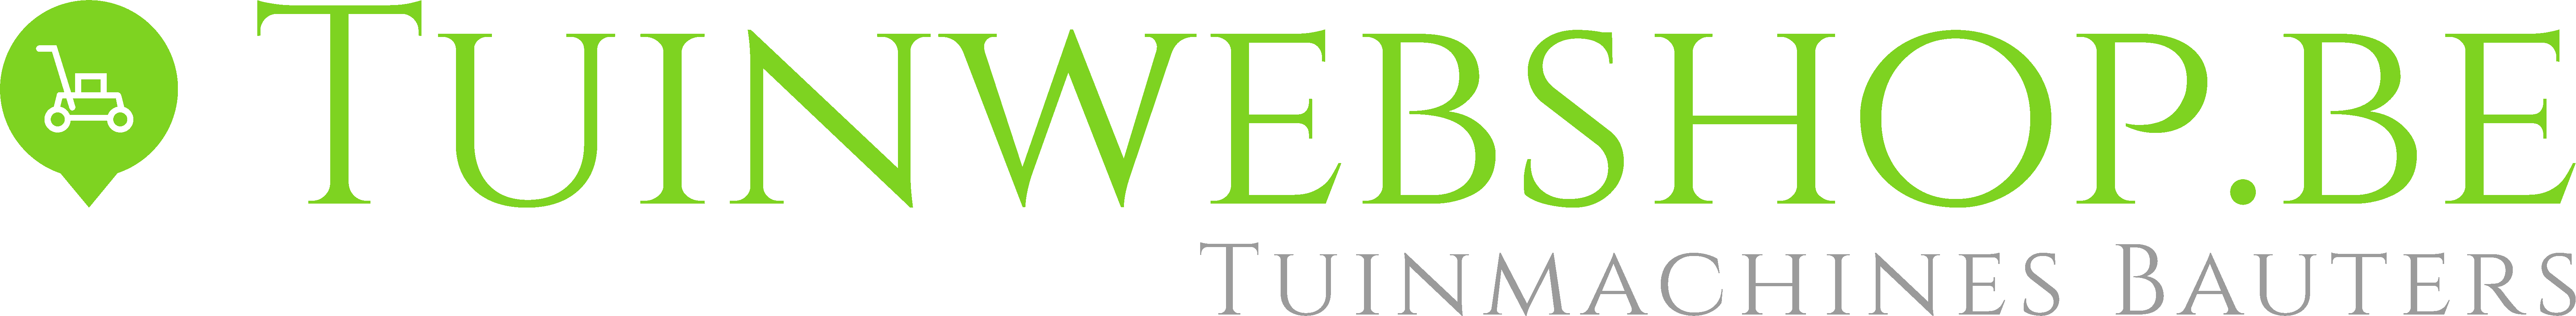 TuinWebshop.be